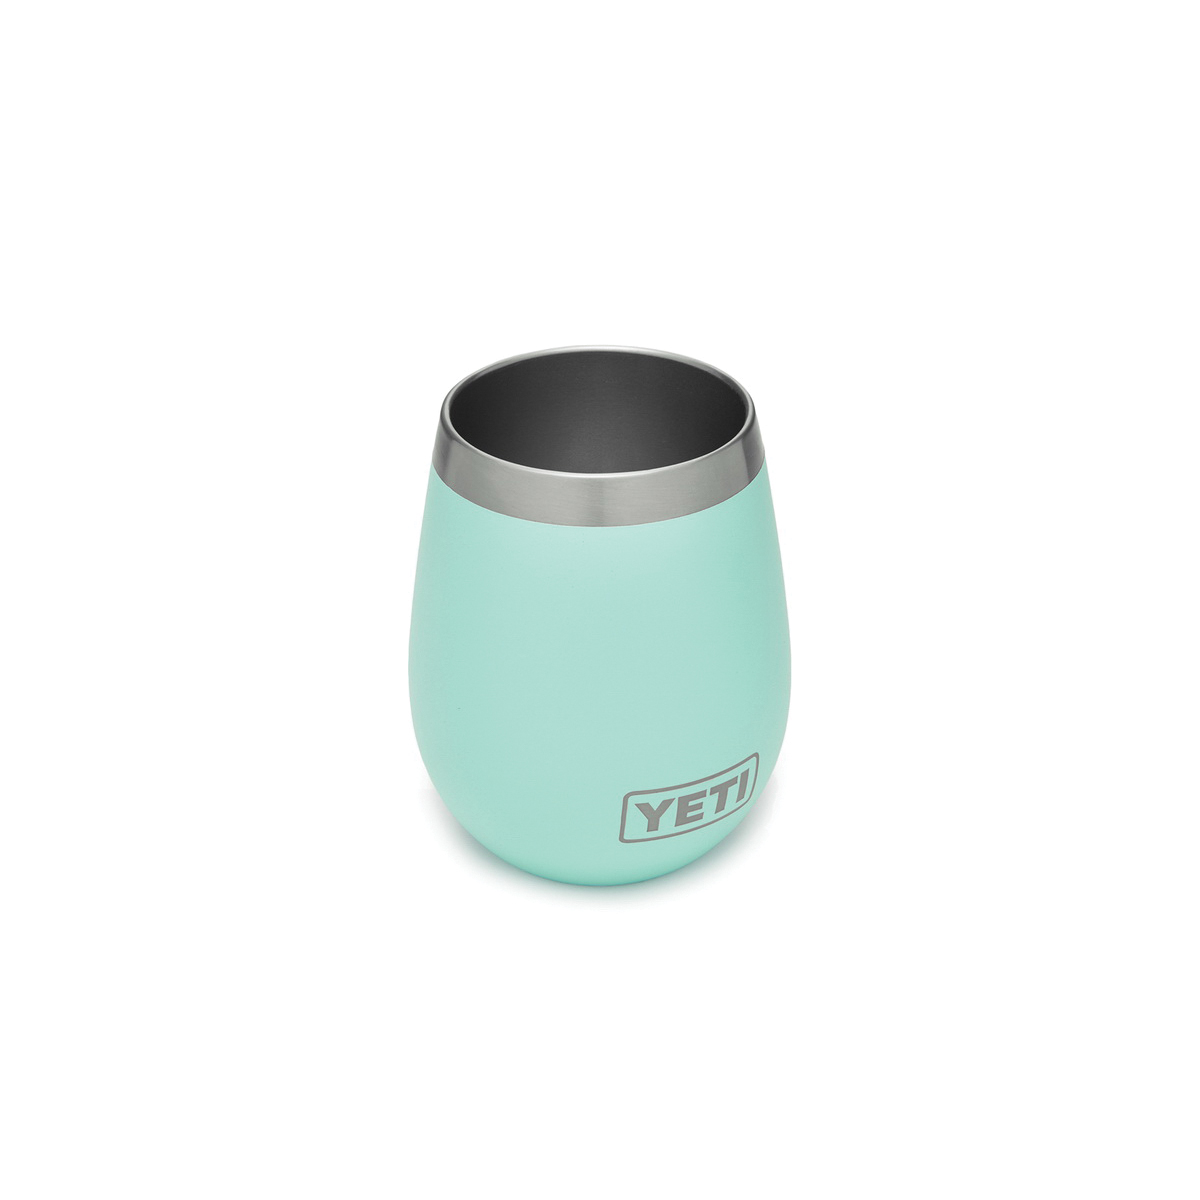 Picture of YETI Rambler 21071300067 Wine Tumbler, 10 oz Capacity, Stainless Steel, Seafoam